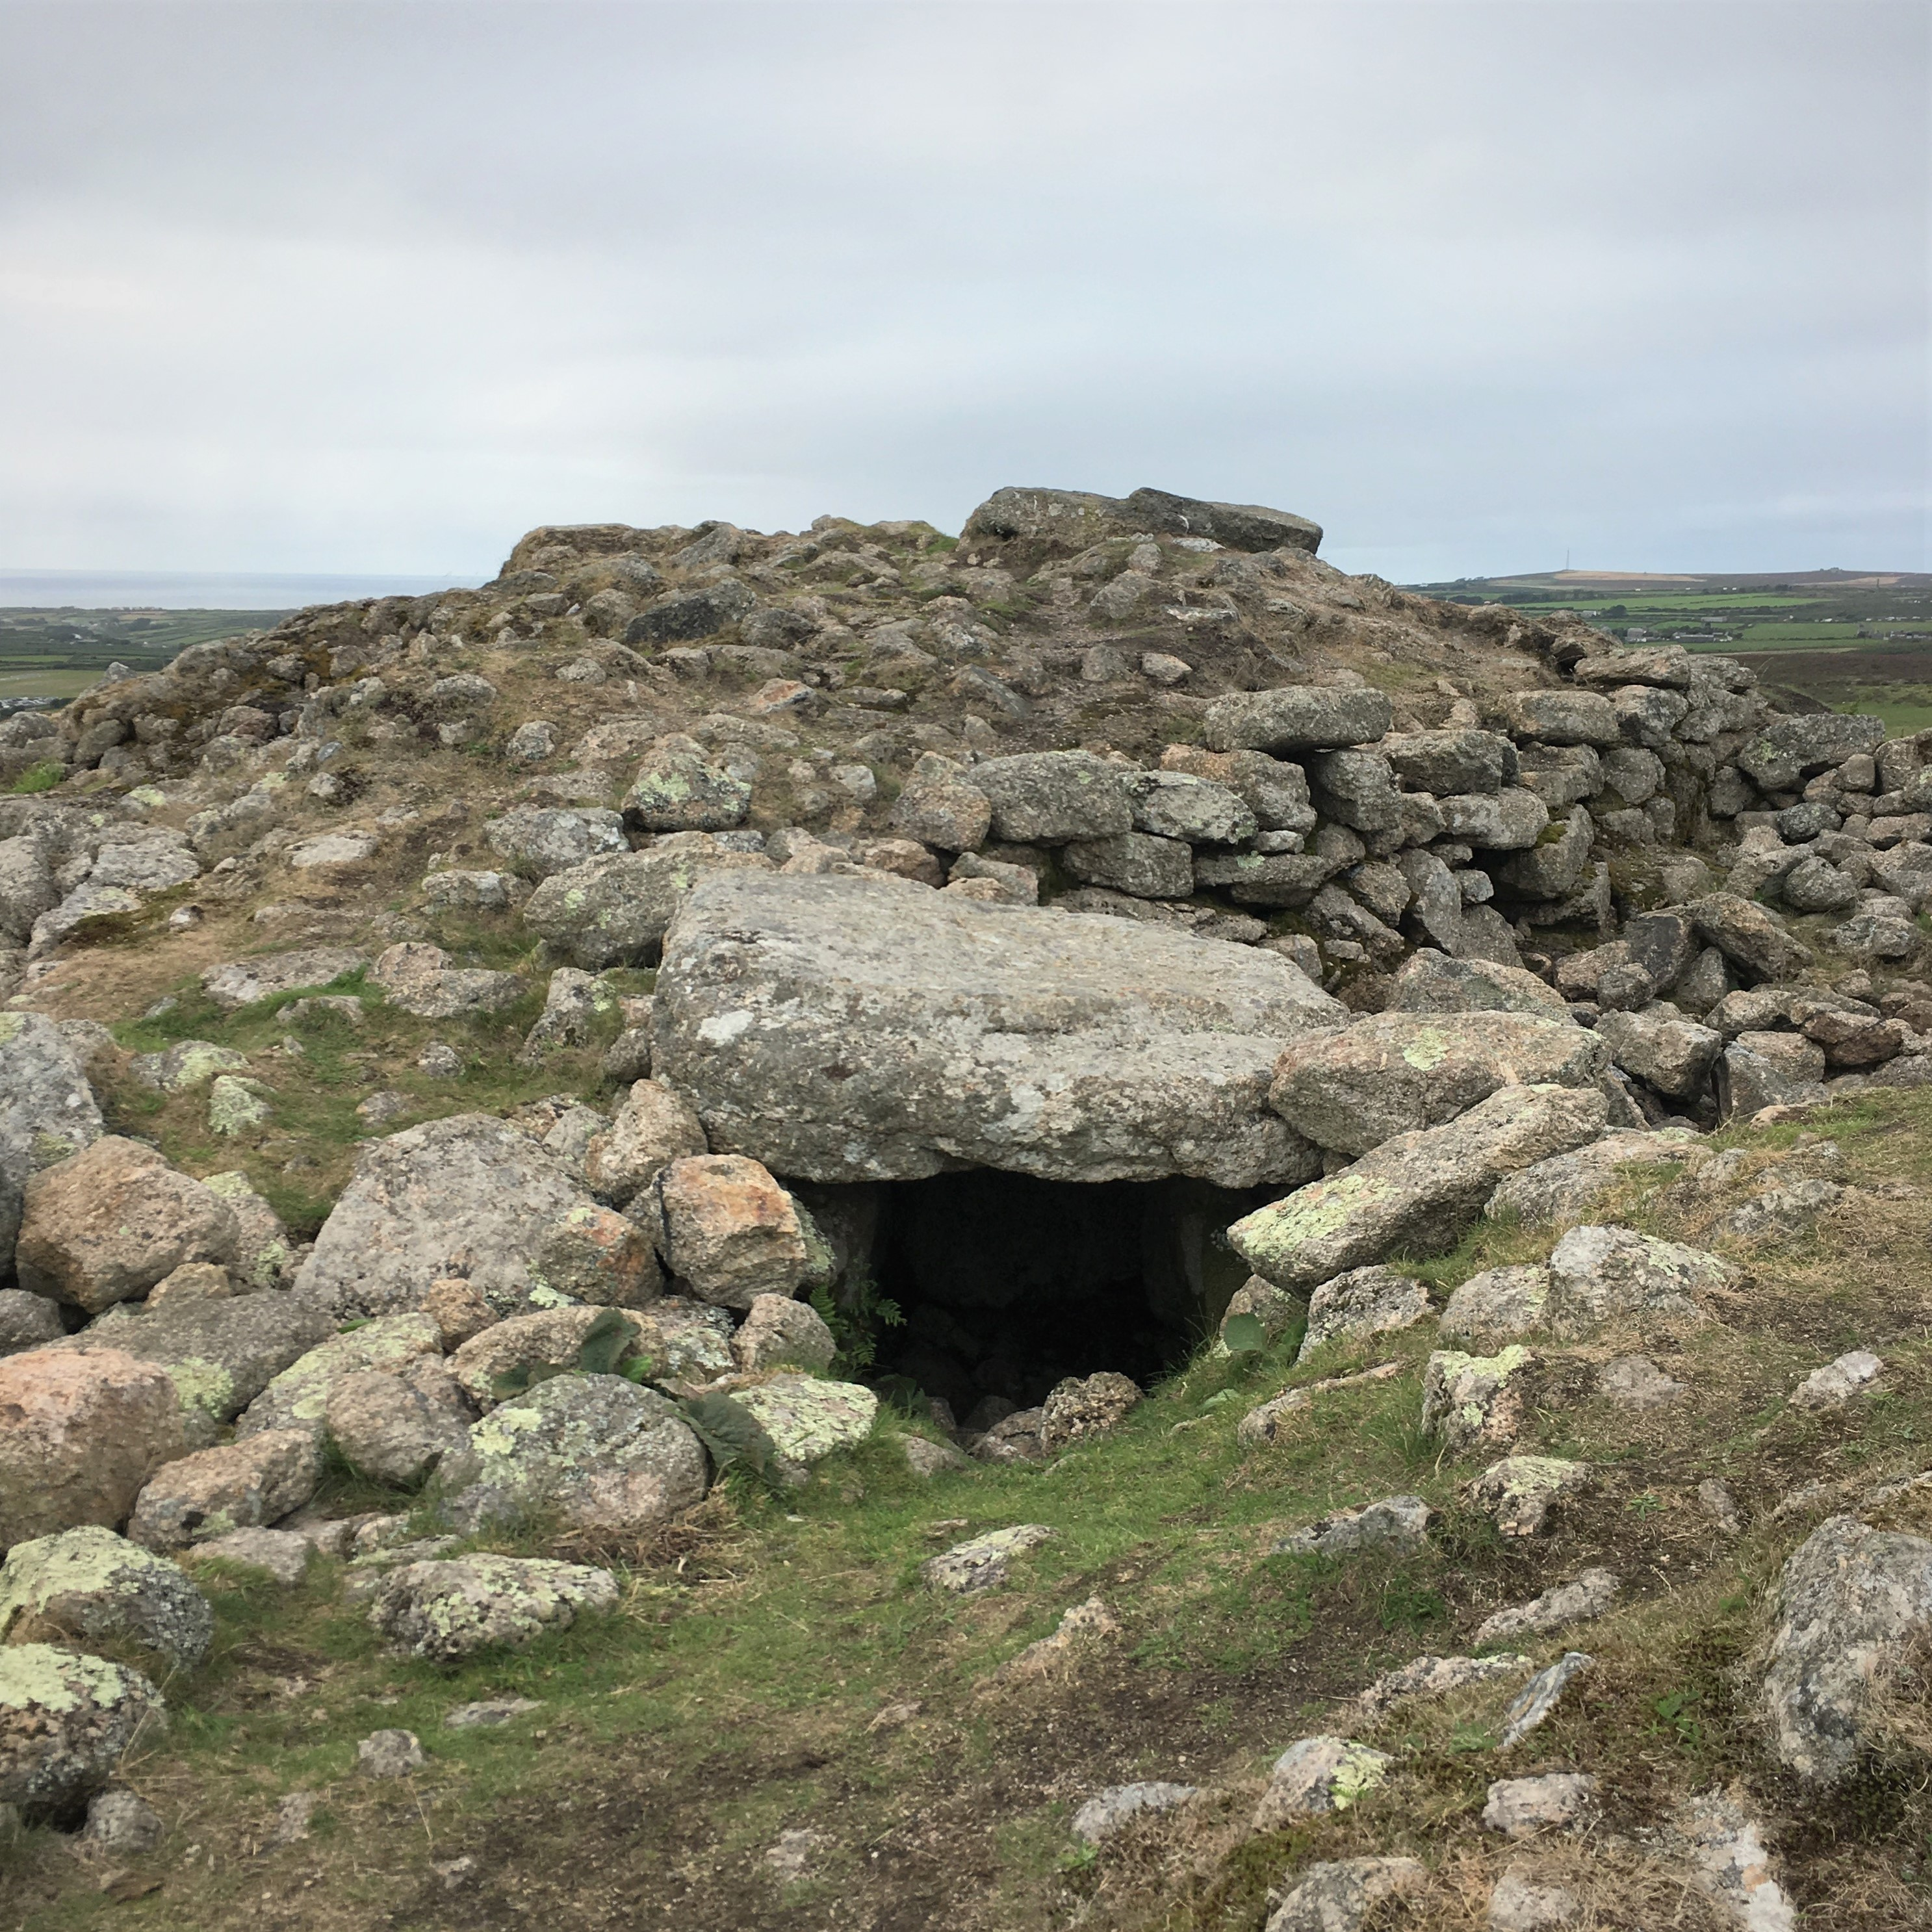 The summit of Chapel Carn Brea has a Neolithic/Early Bronze age burial chamber